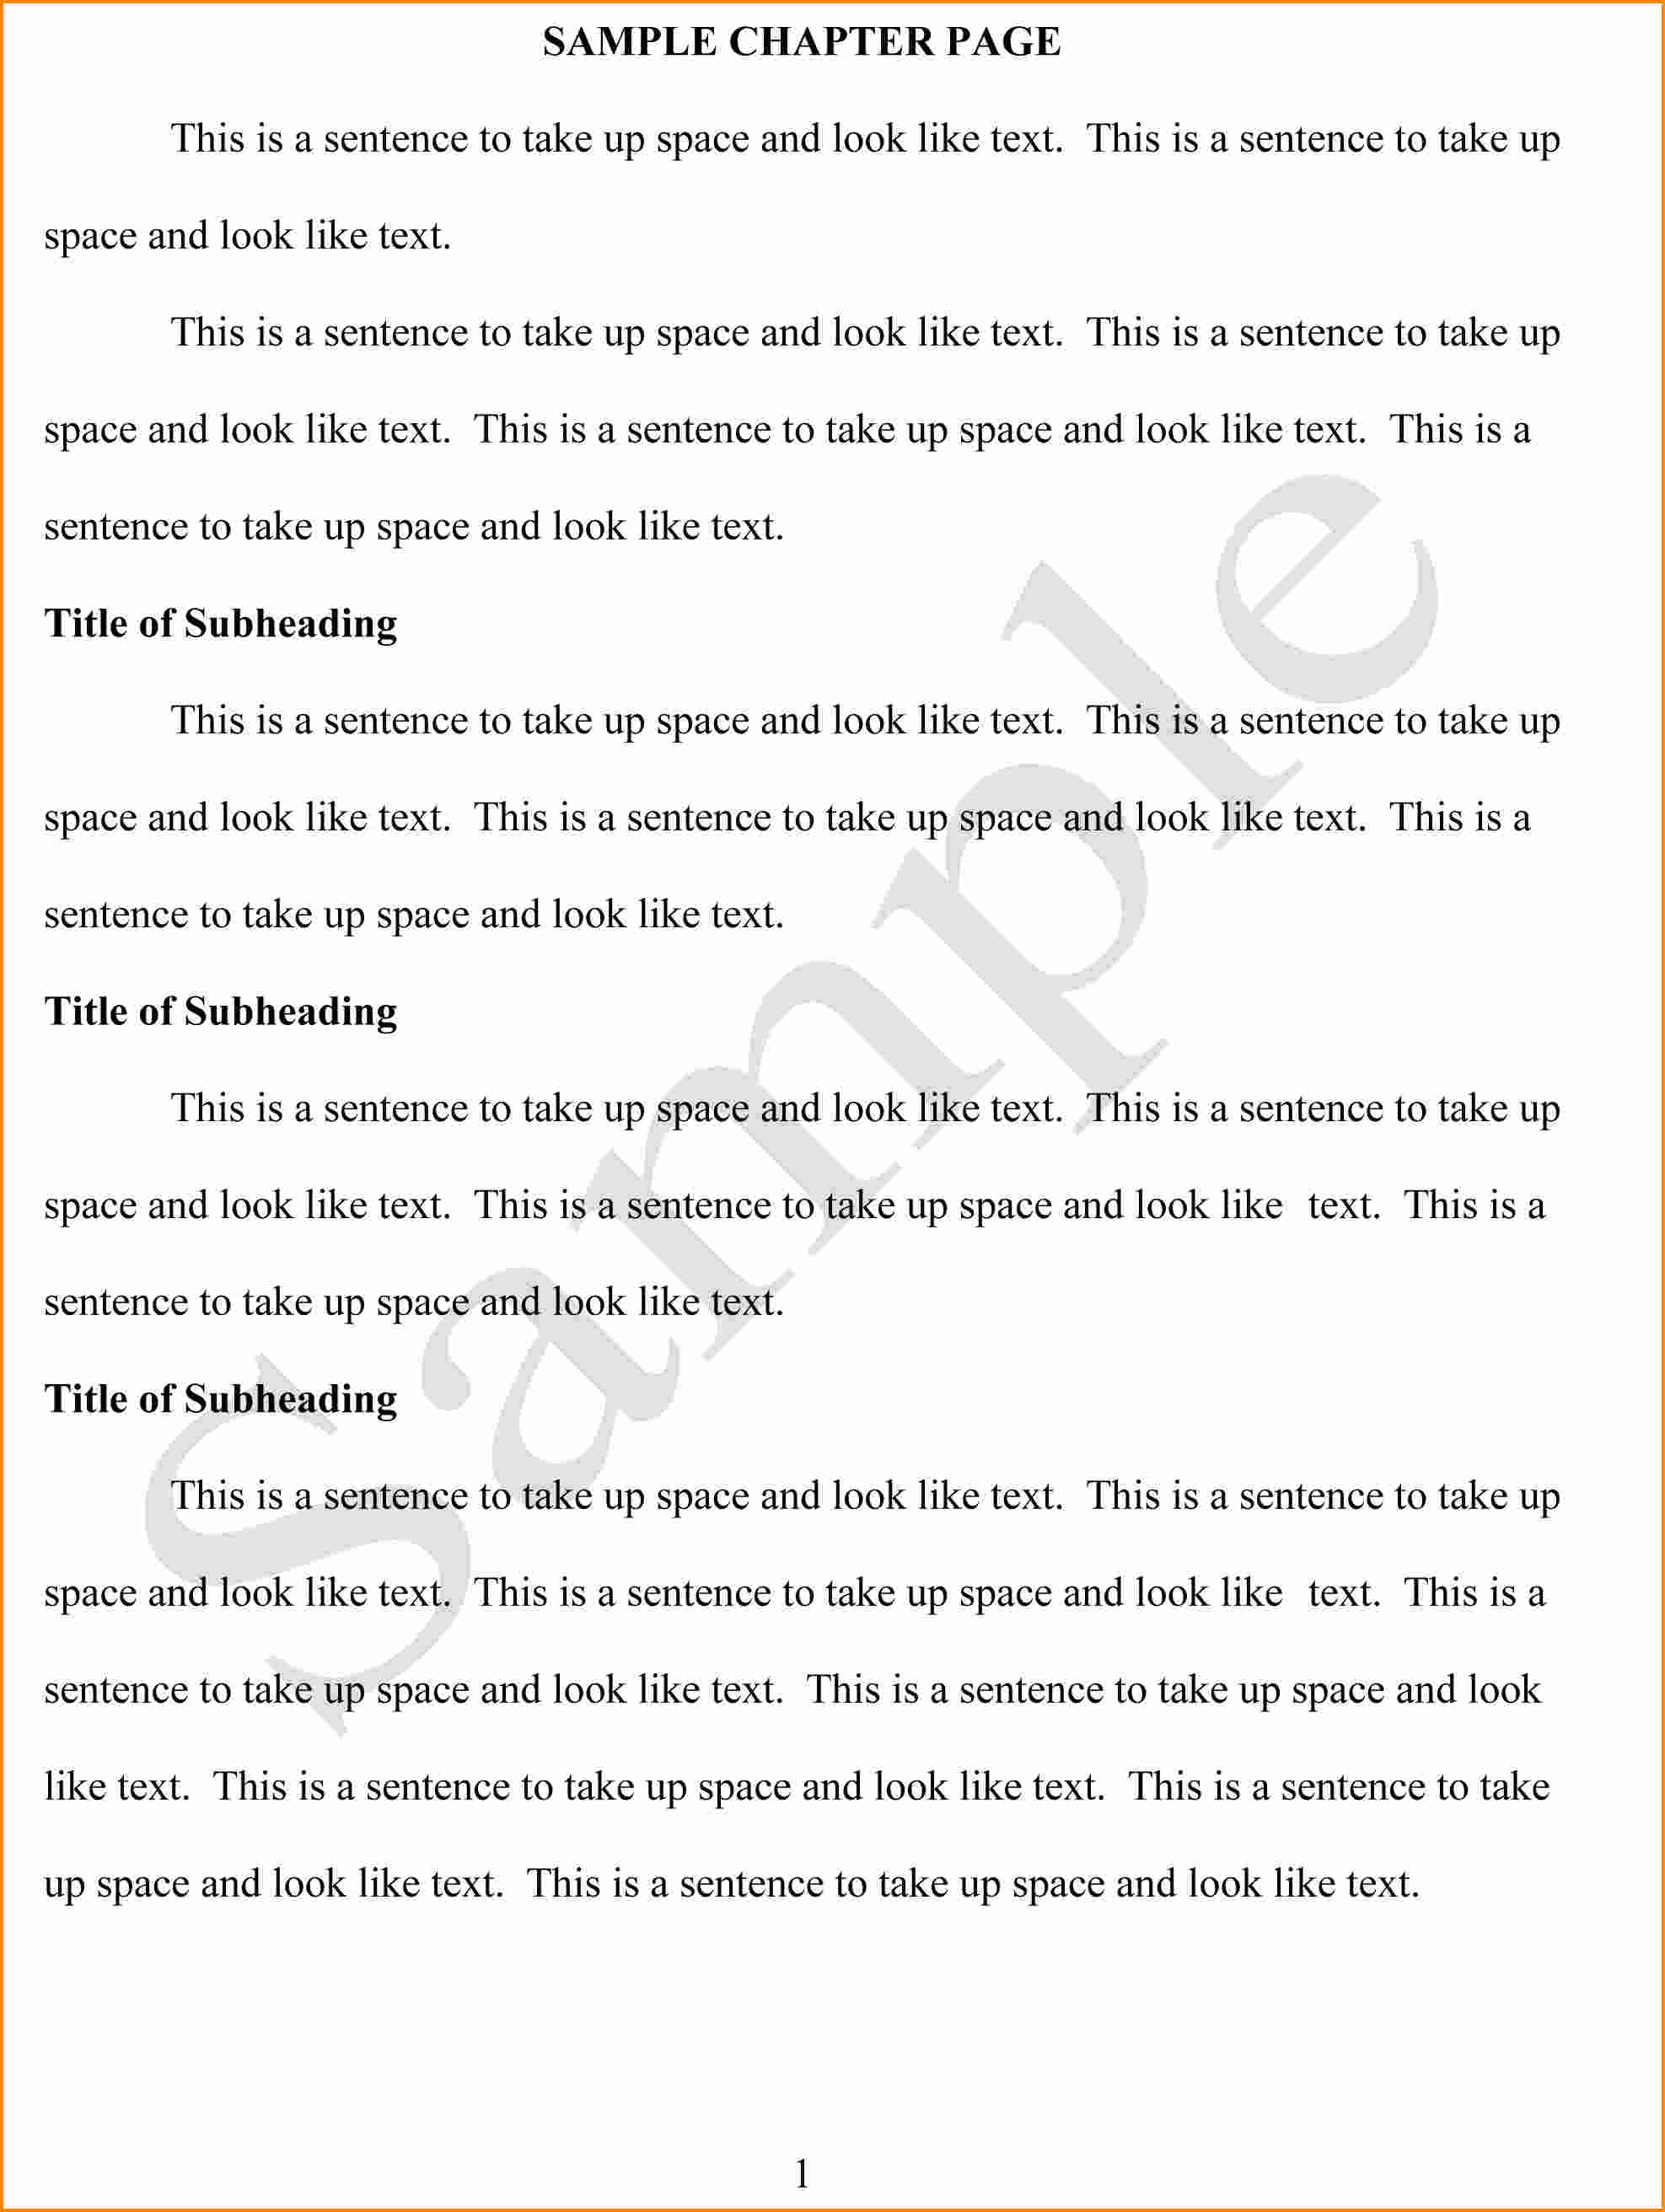 006 Thesis Essay Bullying About In Schools Format Of Persuasive On High School Application Samples Example Amazing Afrikaans Pdf Full